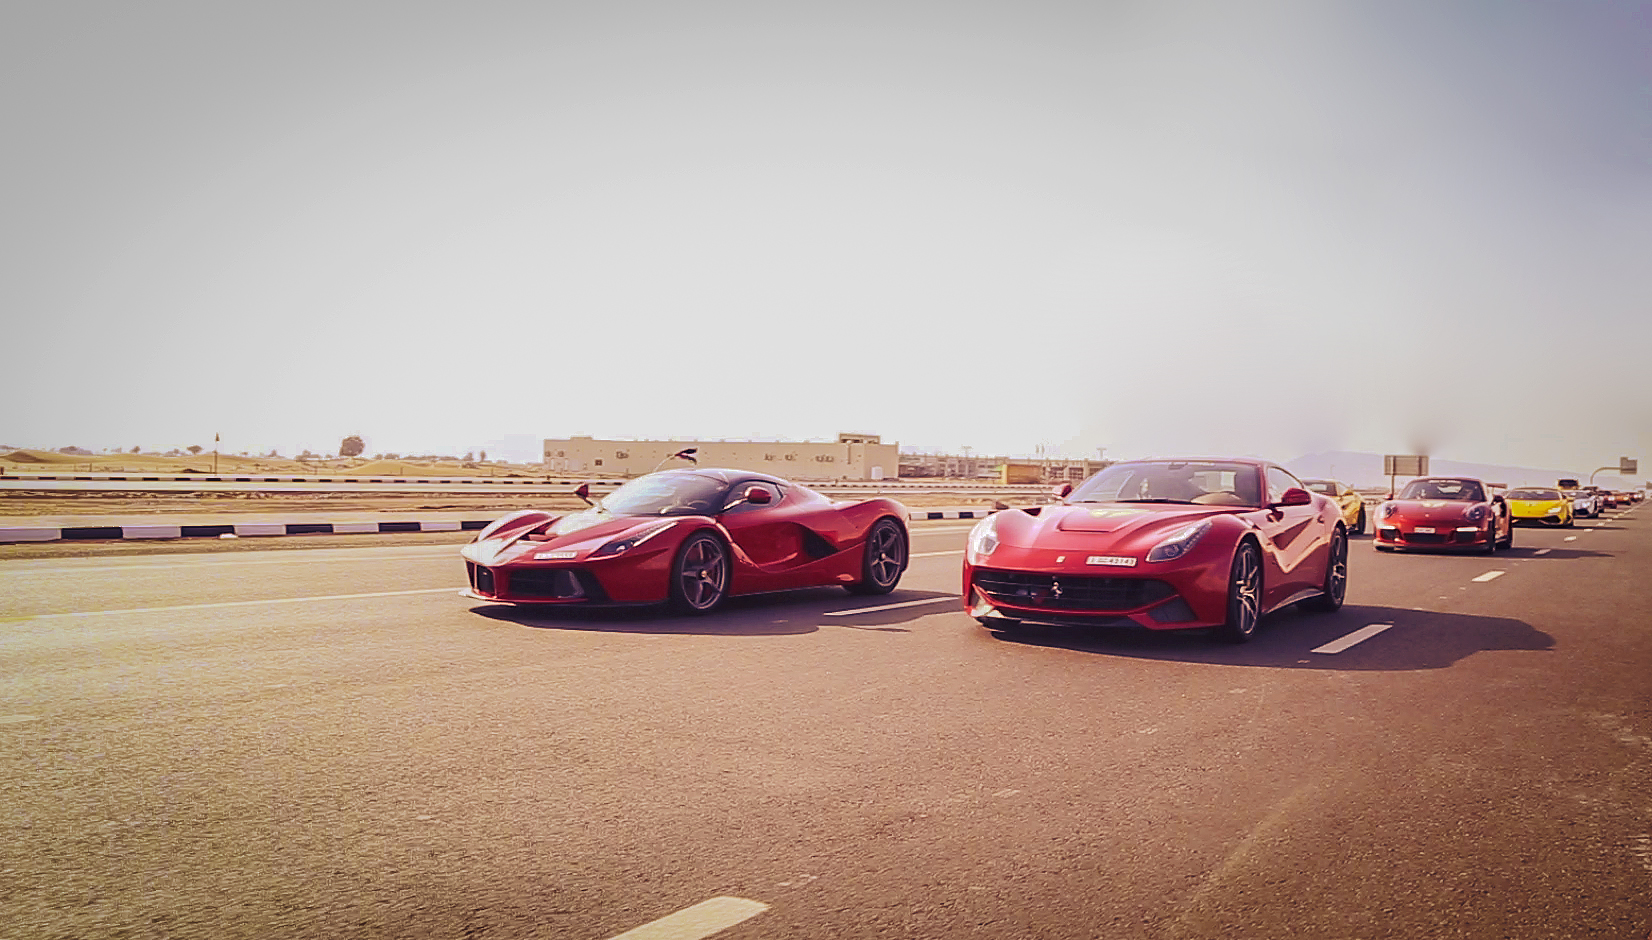 UAE supercars Celebrate the Spirit of the Union with Dazzling Event